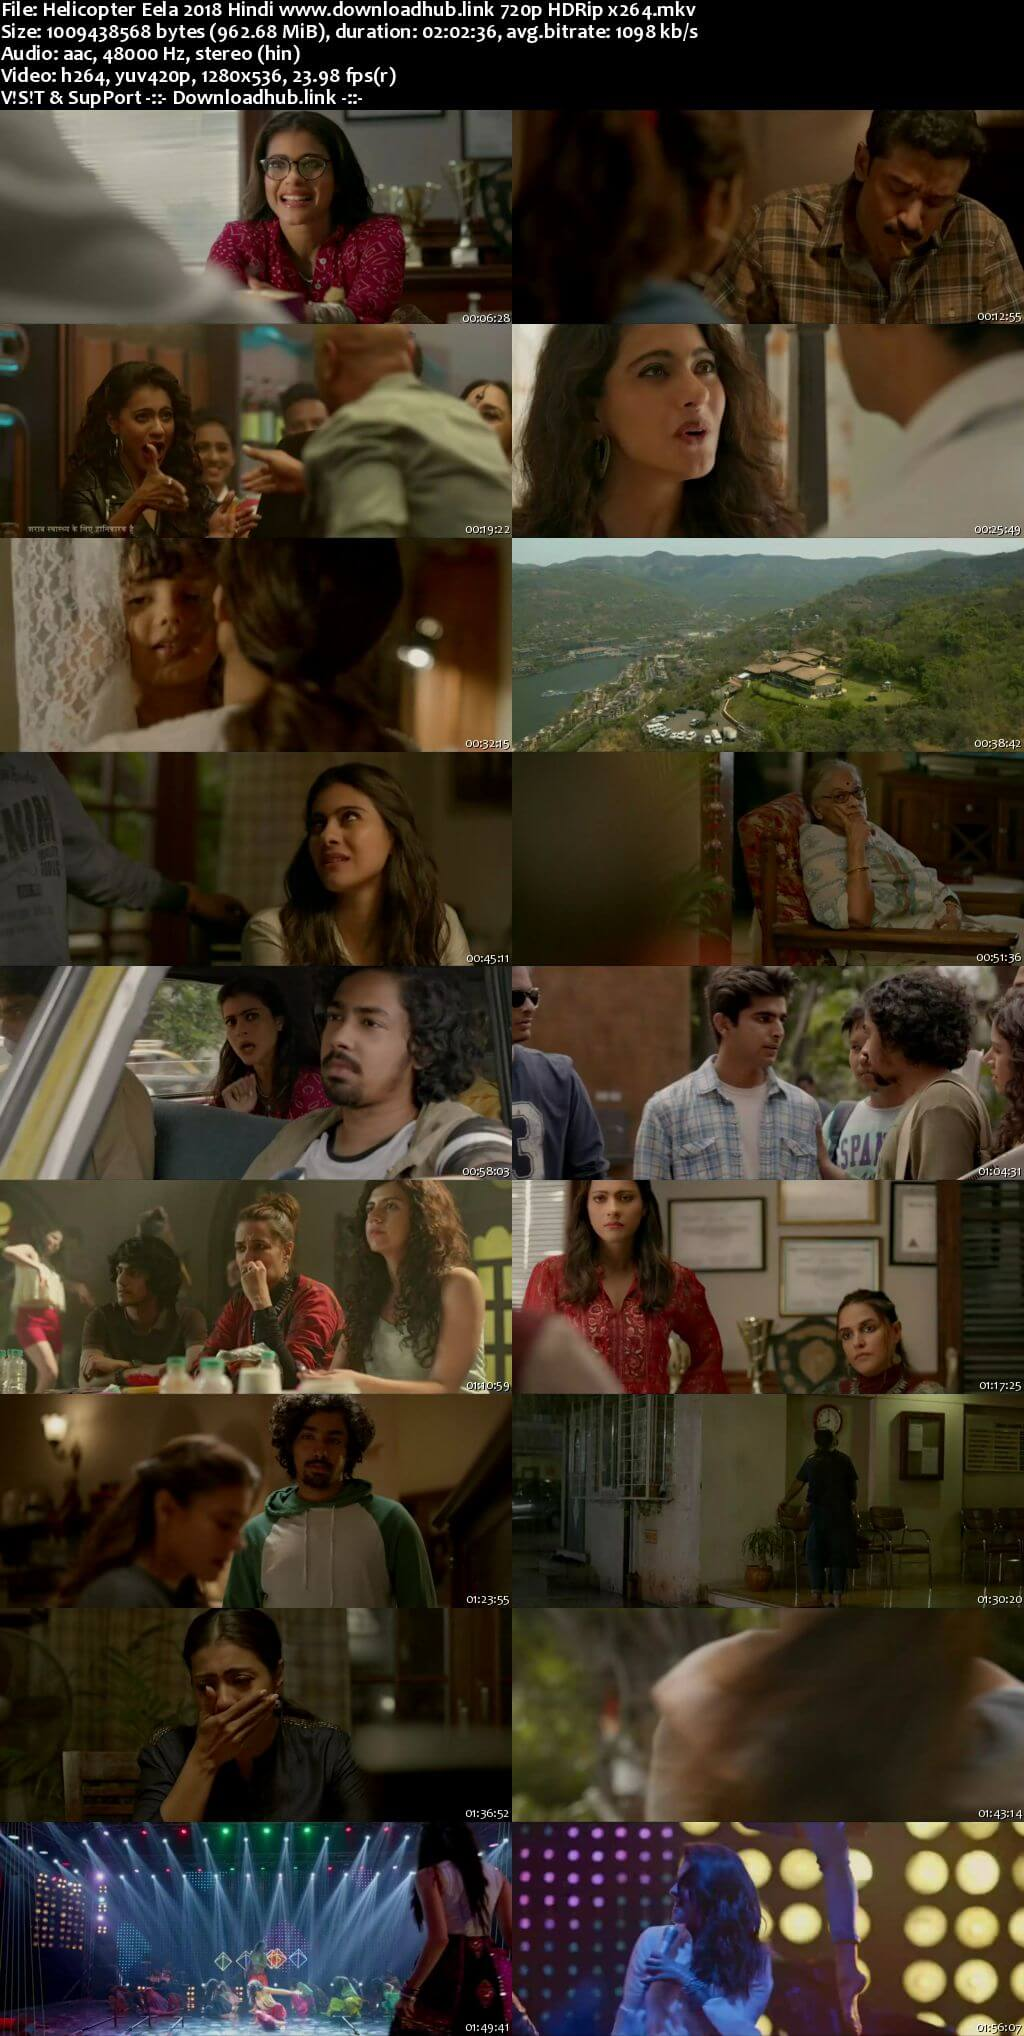 Helicopter Eela 2018 Hindi 720p HDRip x264